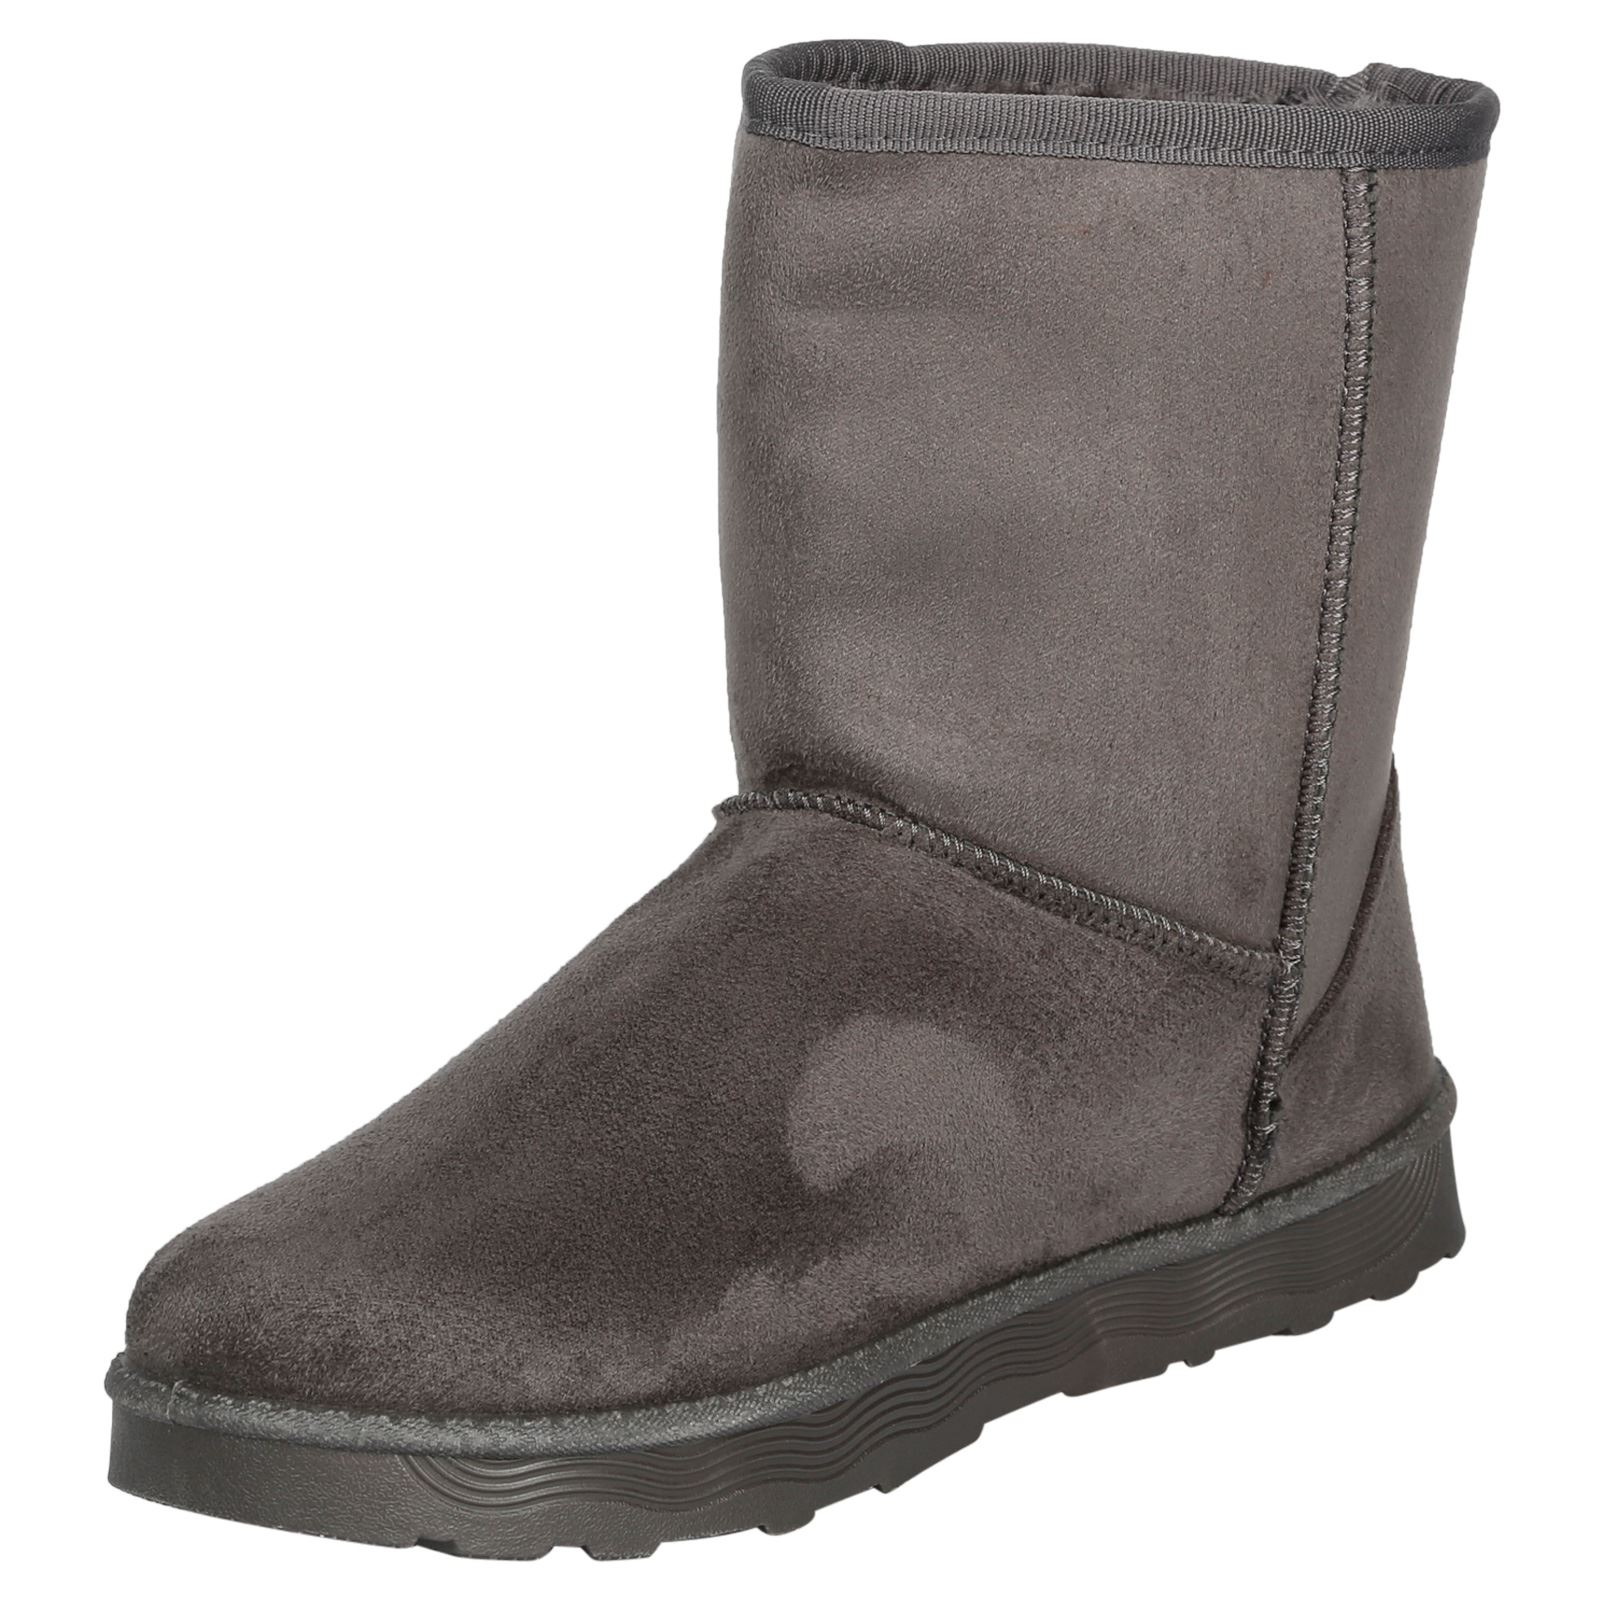 Paisleigh-Womens-Platfrom-Flat-Fur-Lined-Pull-On-Snug-Snow-Boots-Casual-Ladies thumbnail 11